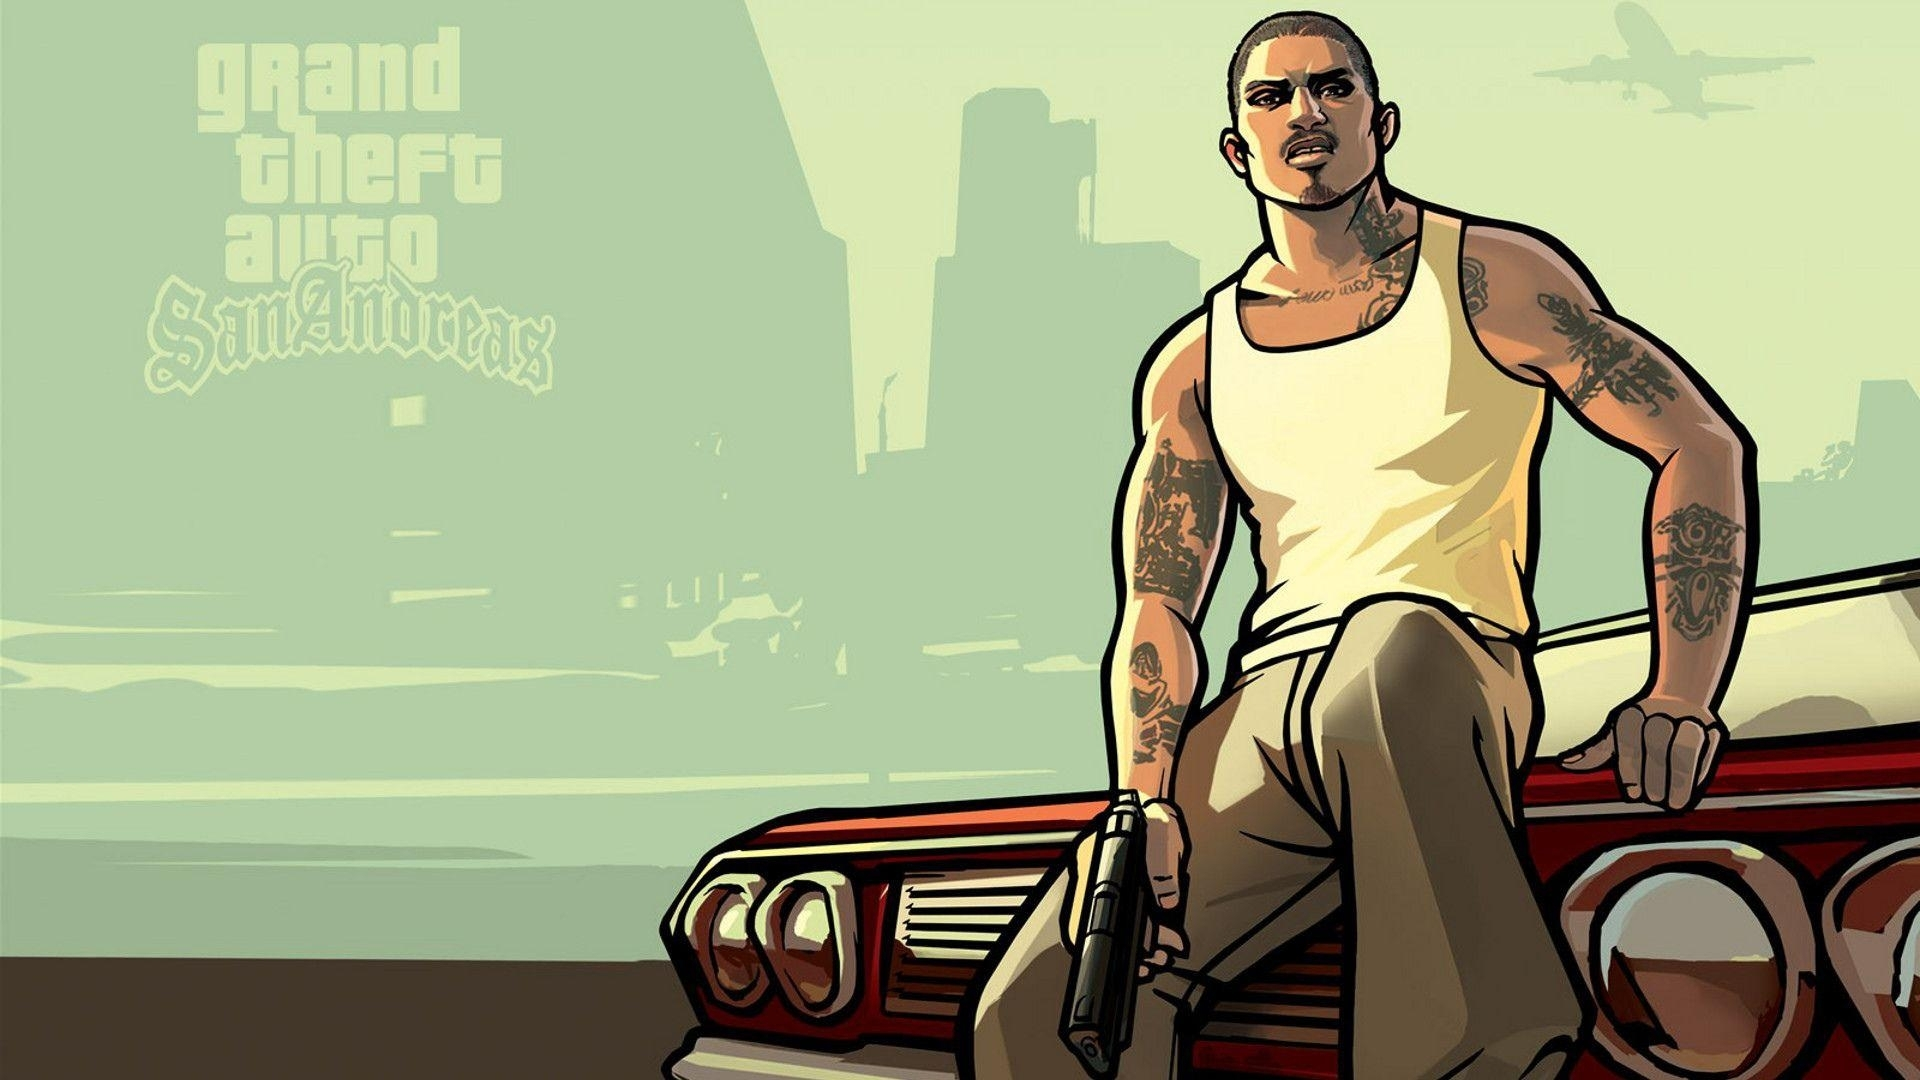 10 New Gta San Andreas Backgrounds FULL HD 1080p For PC Background